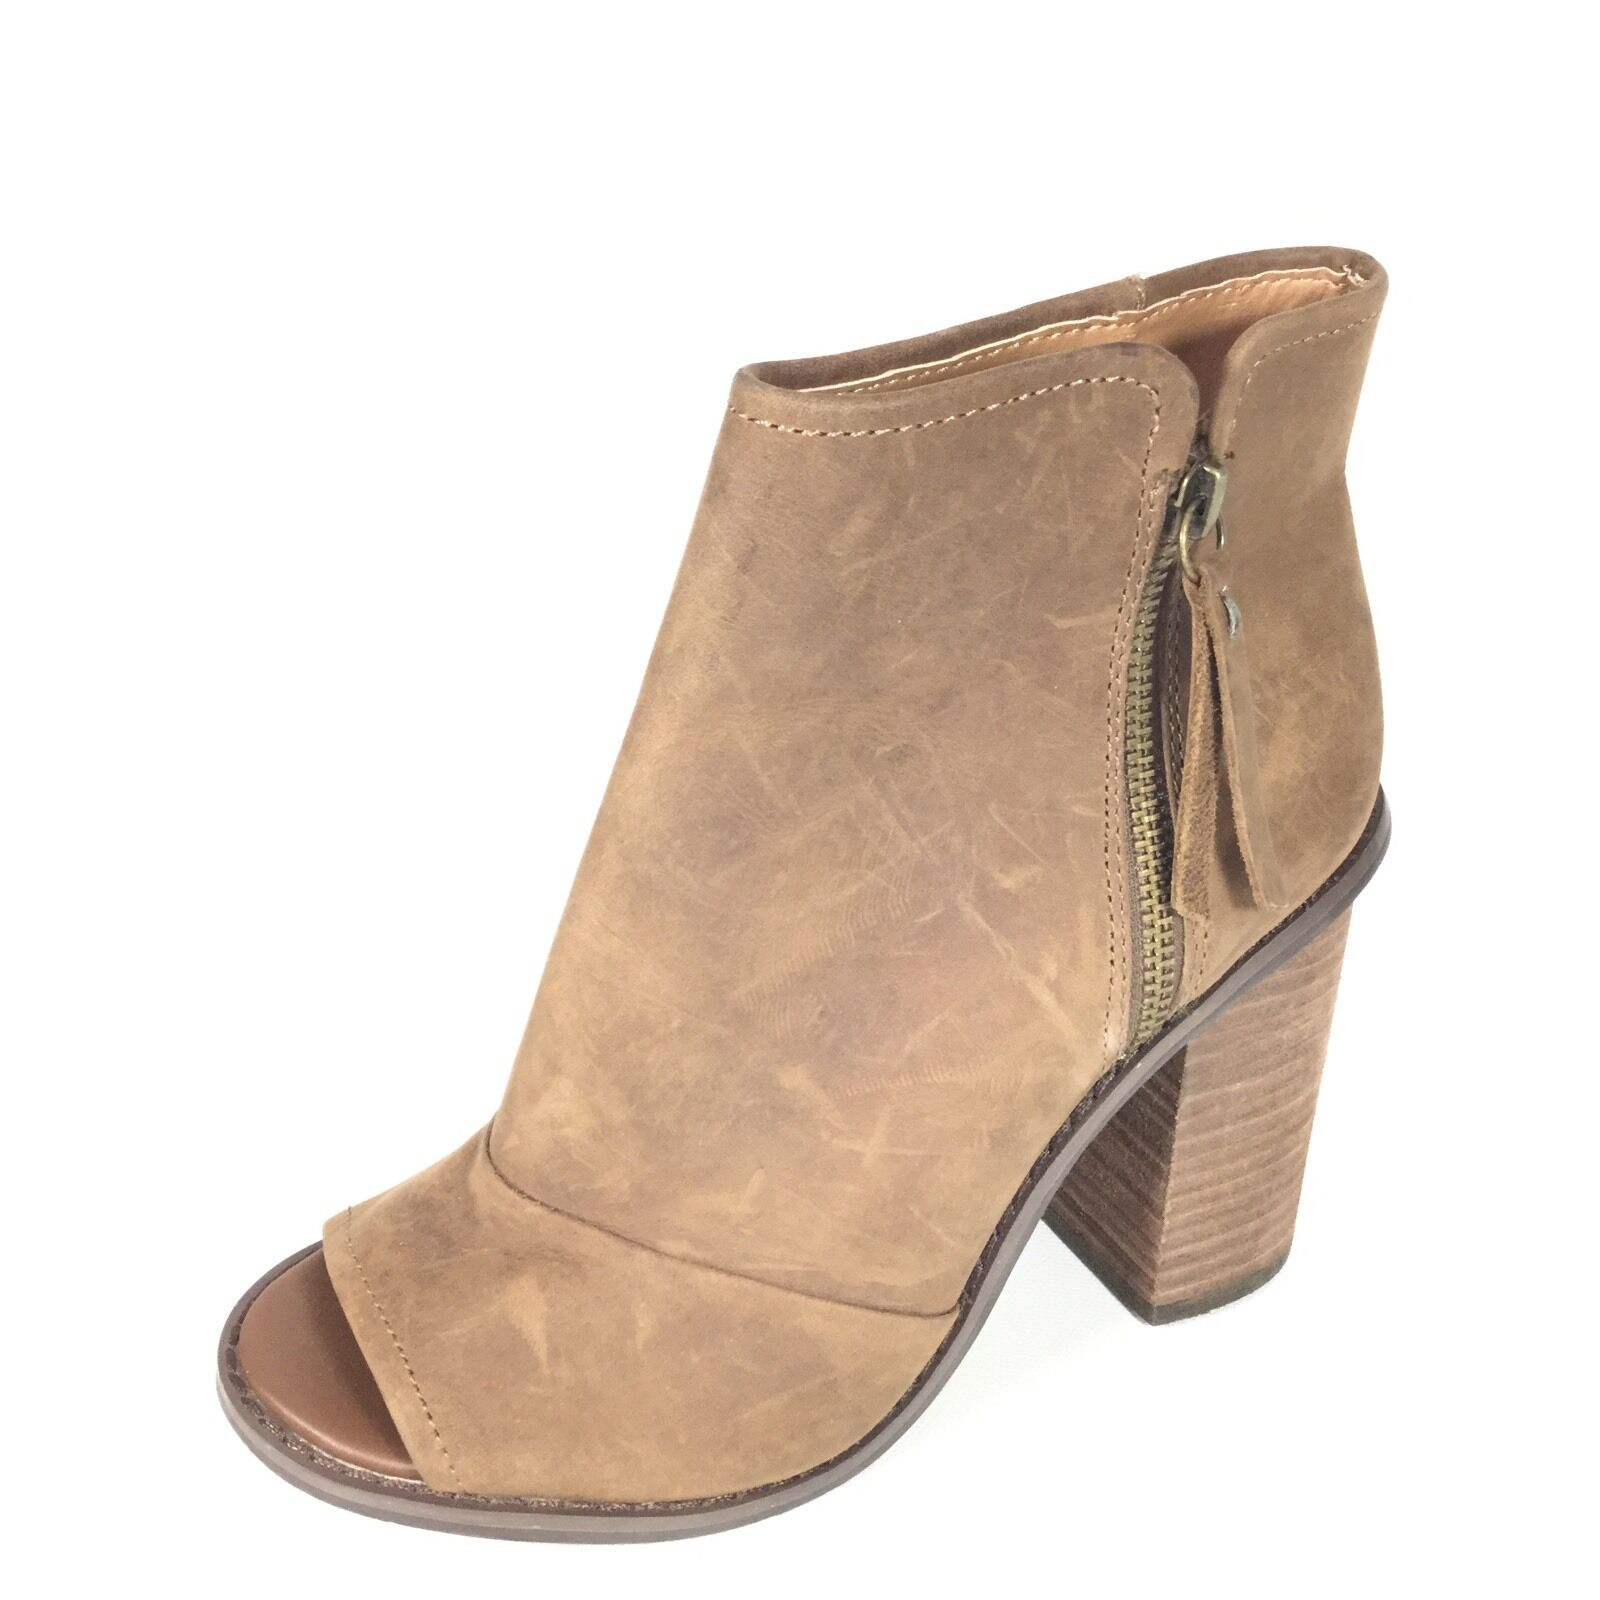 Kelsi Dagger Women's Size 8.5 Brown Leather Open Toe Ankle Boots.